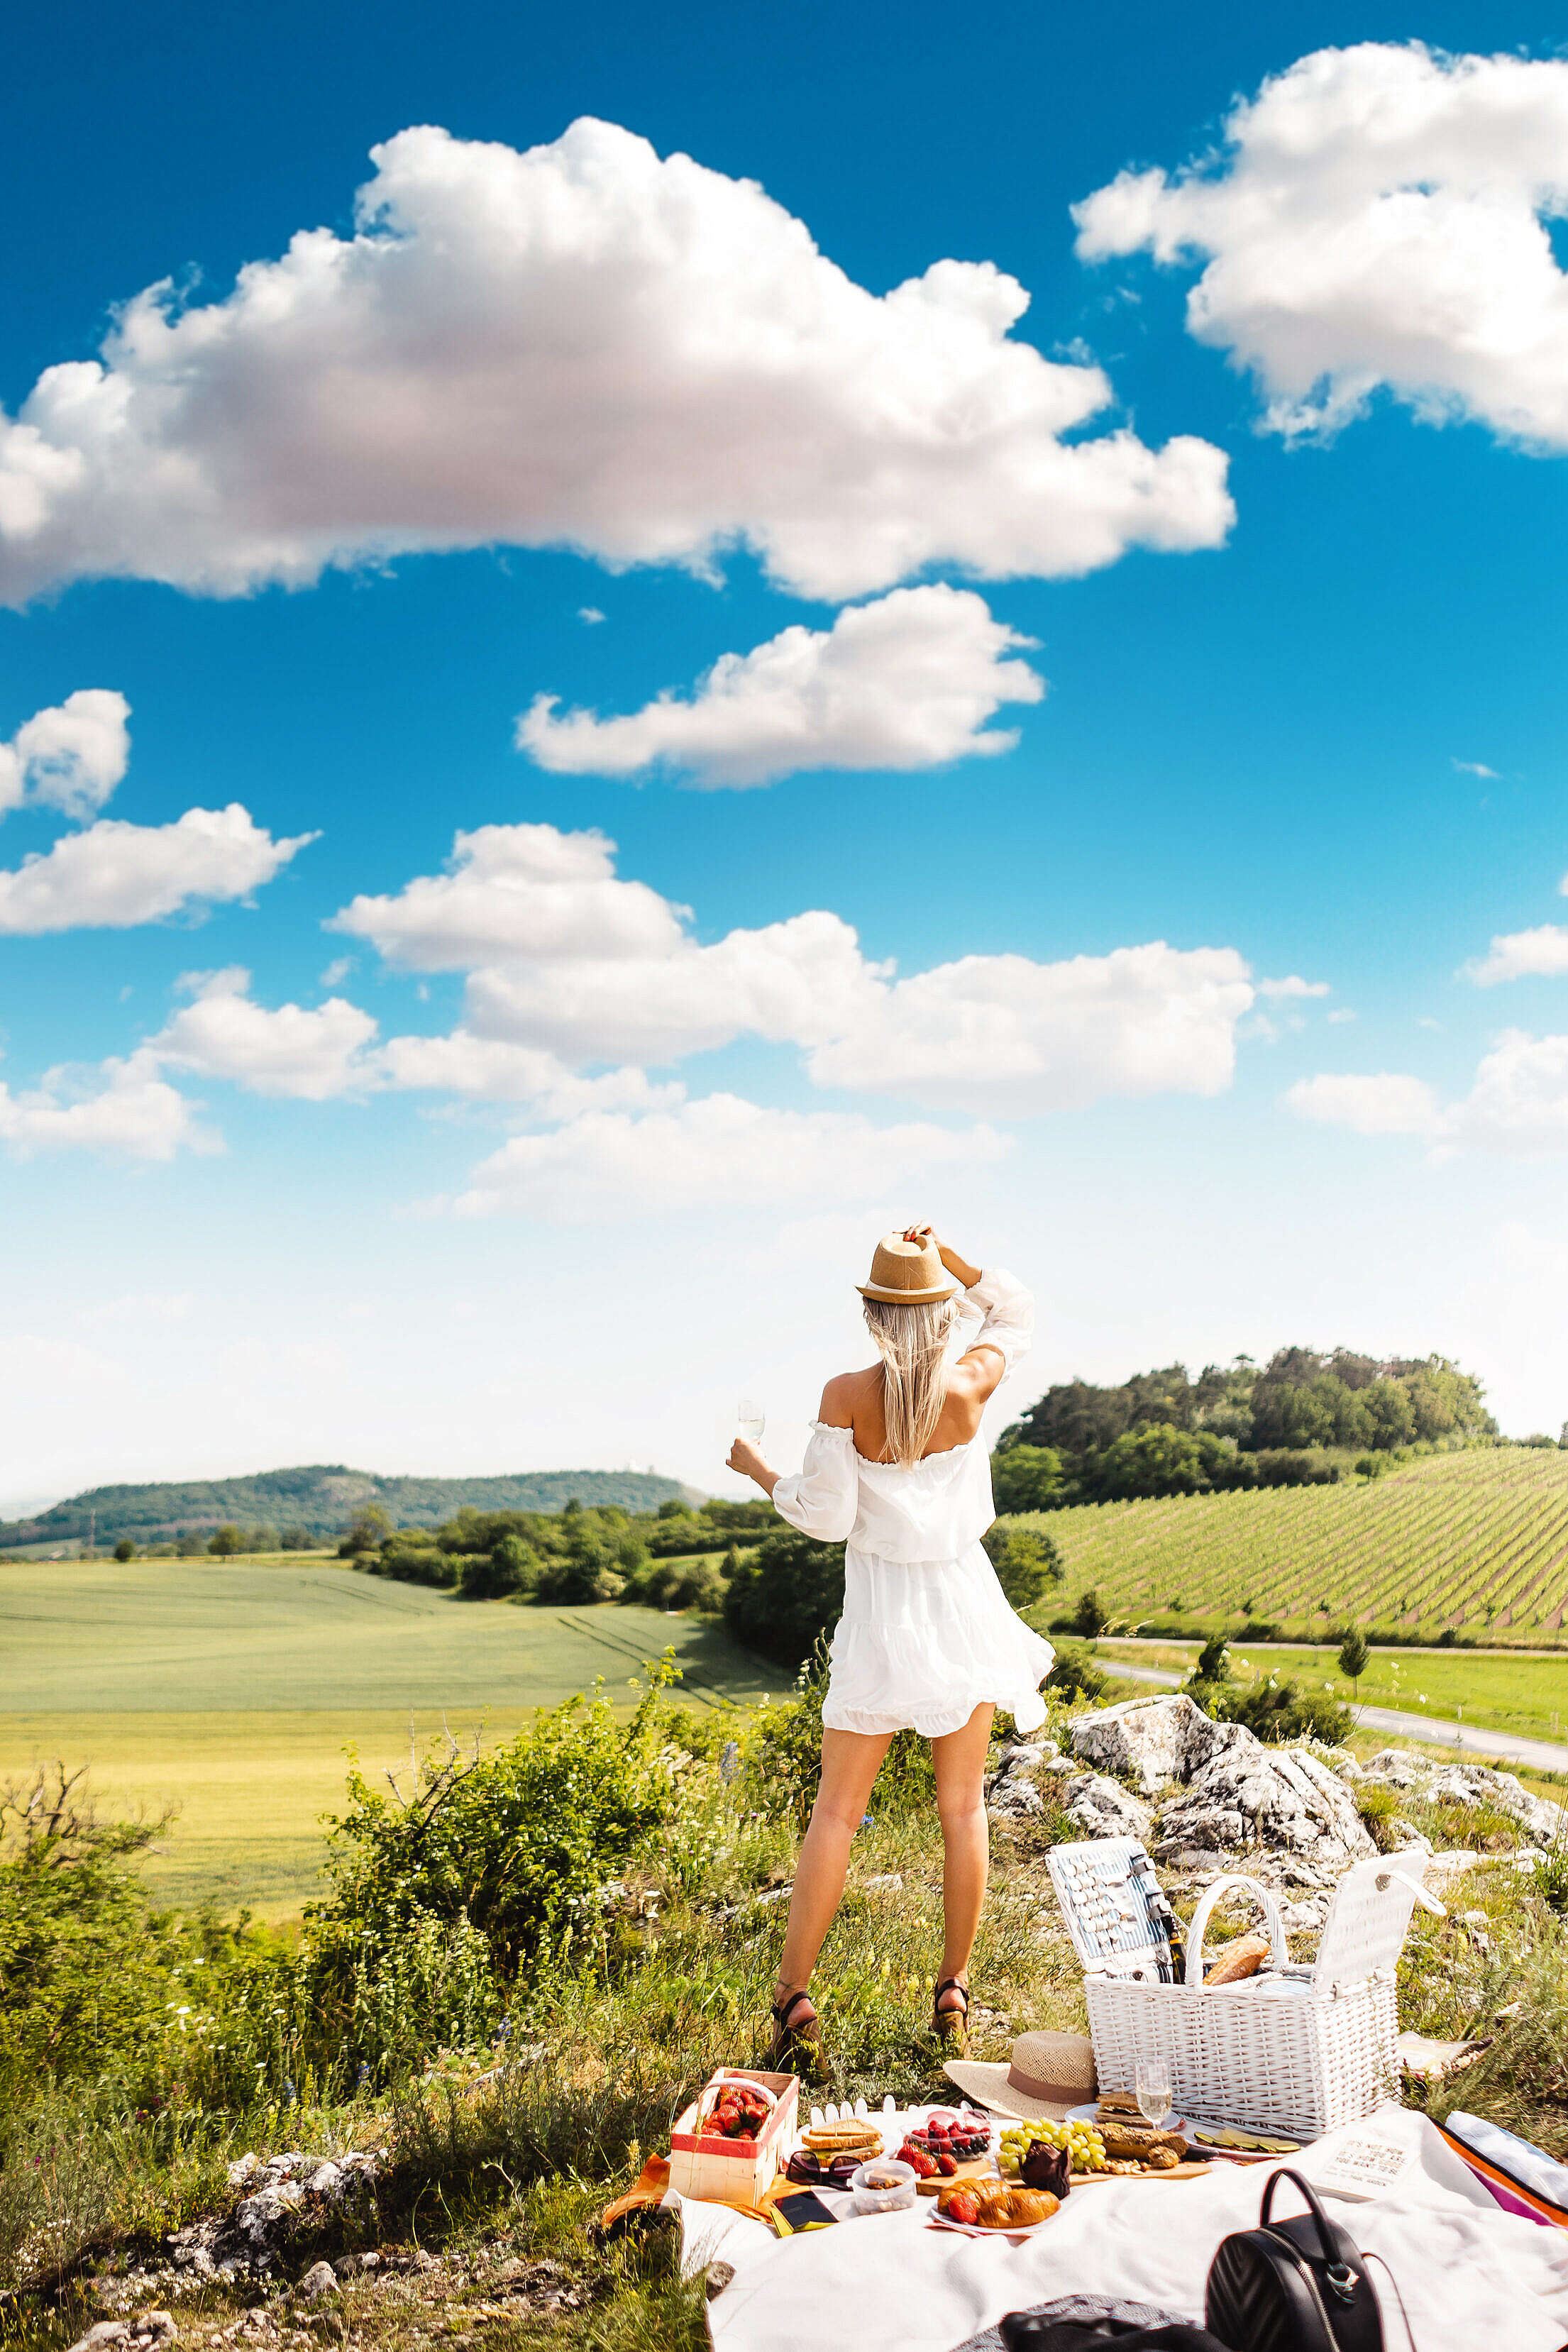 Woman Looking at The View of Vineyard Free Stock Photo